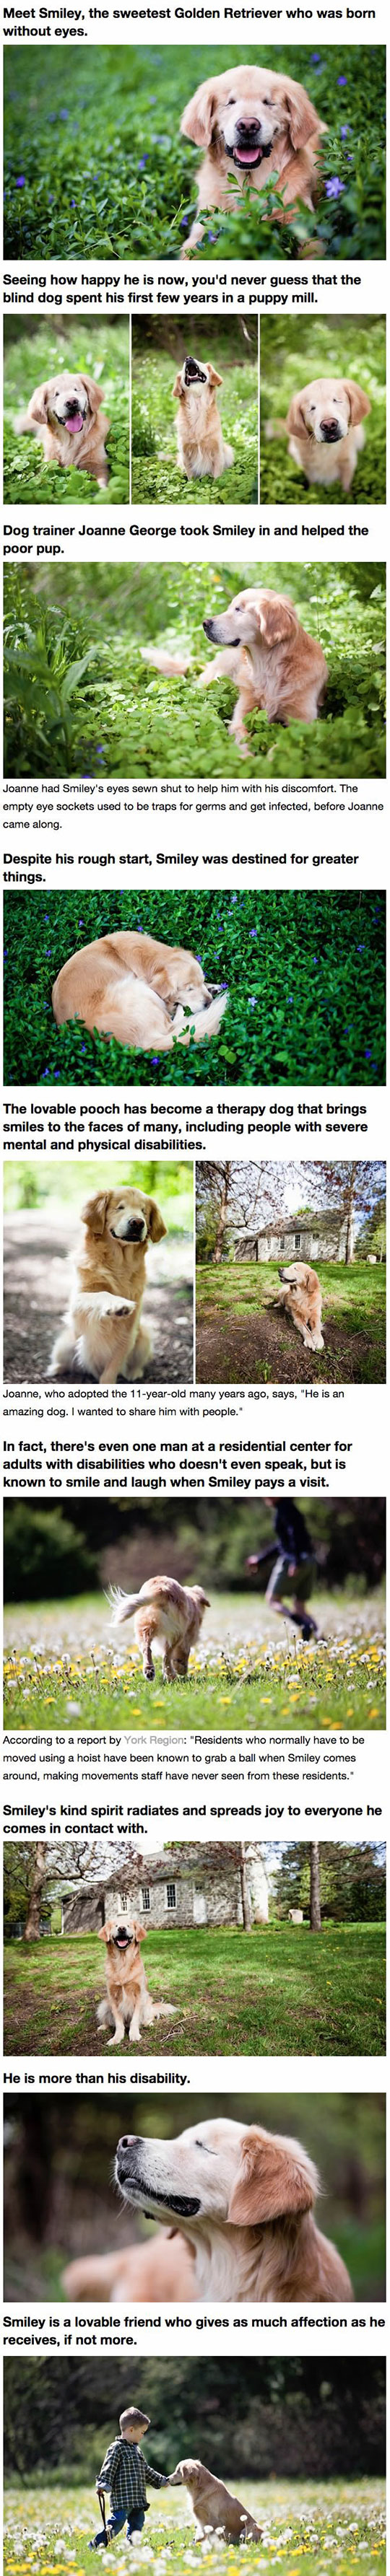 cute-blind-Golden-Retriever-story